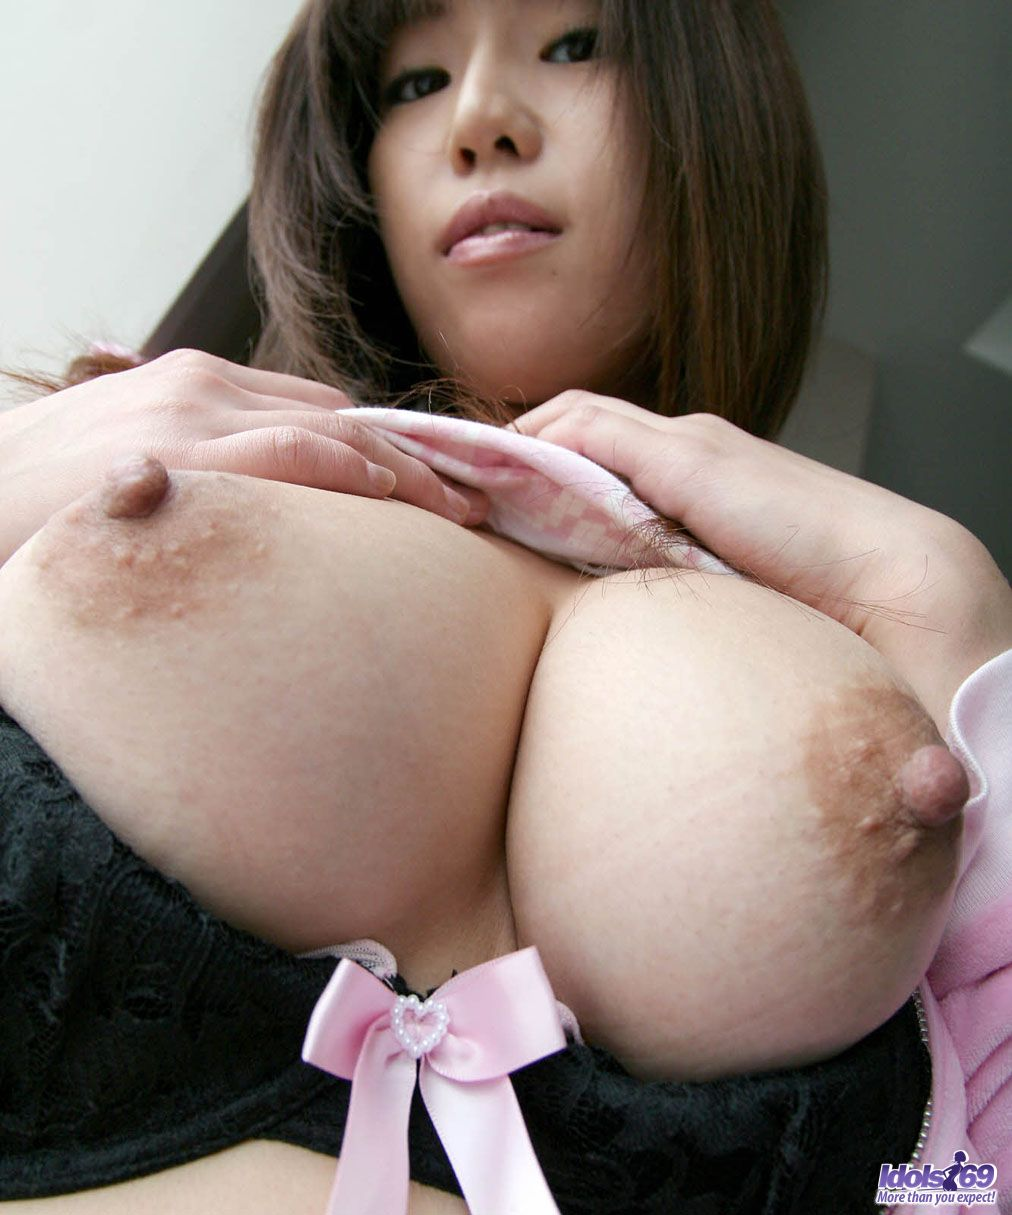 Jewel asian big boob girl